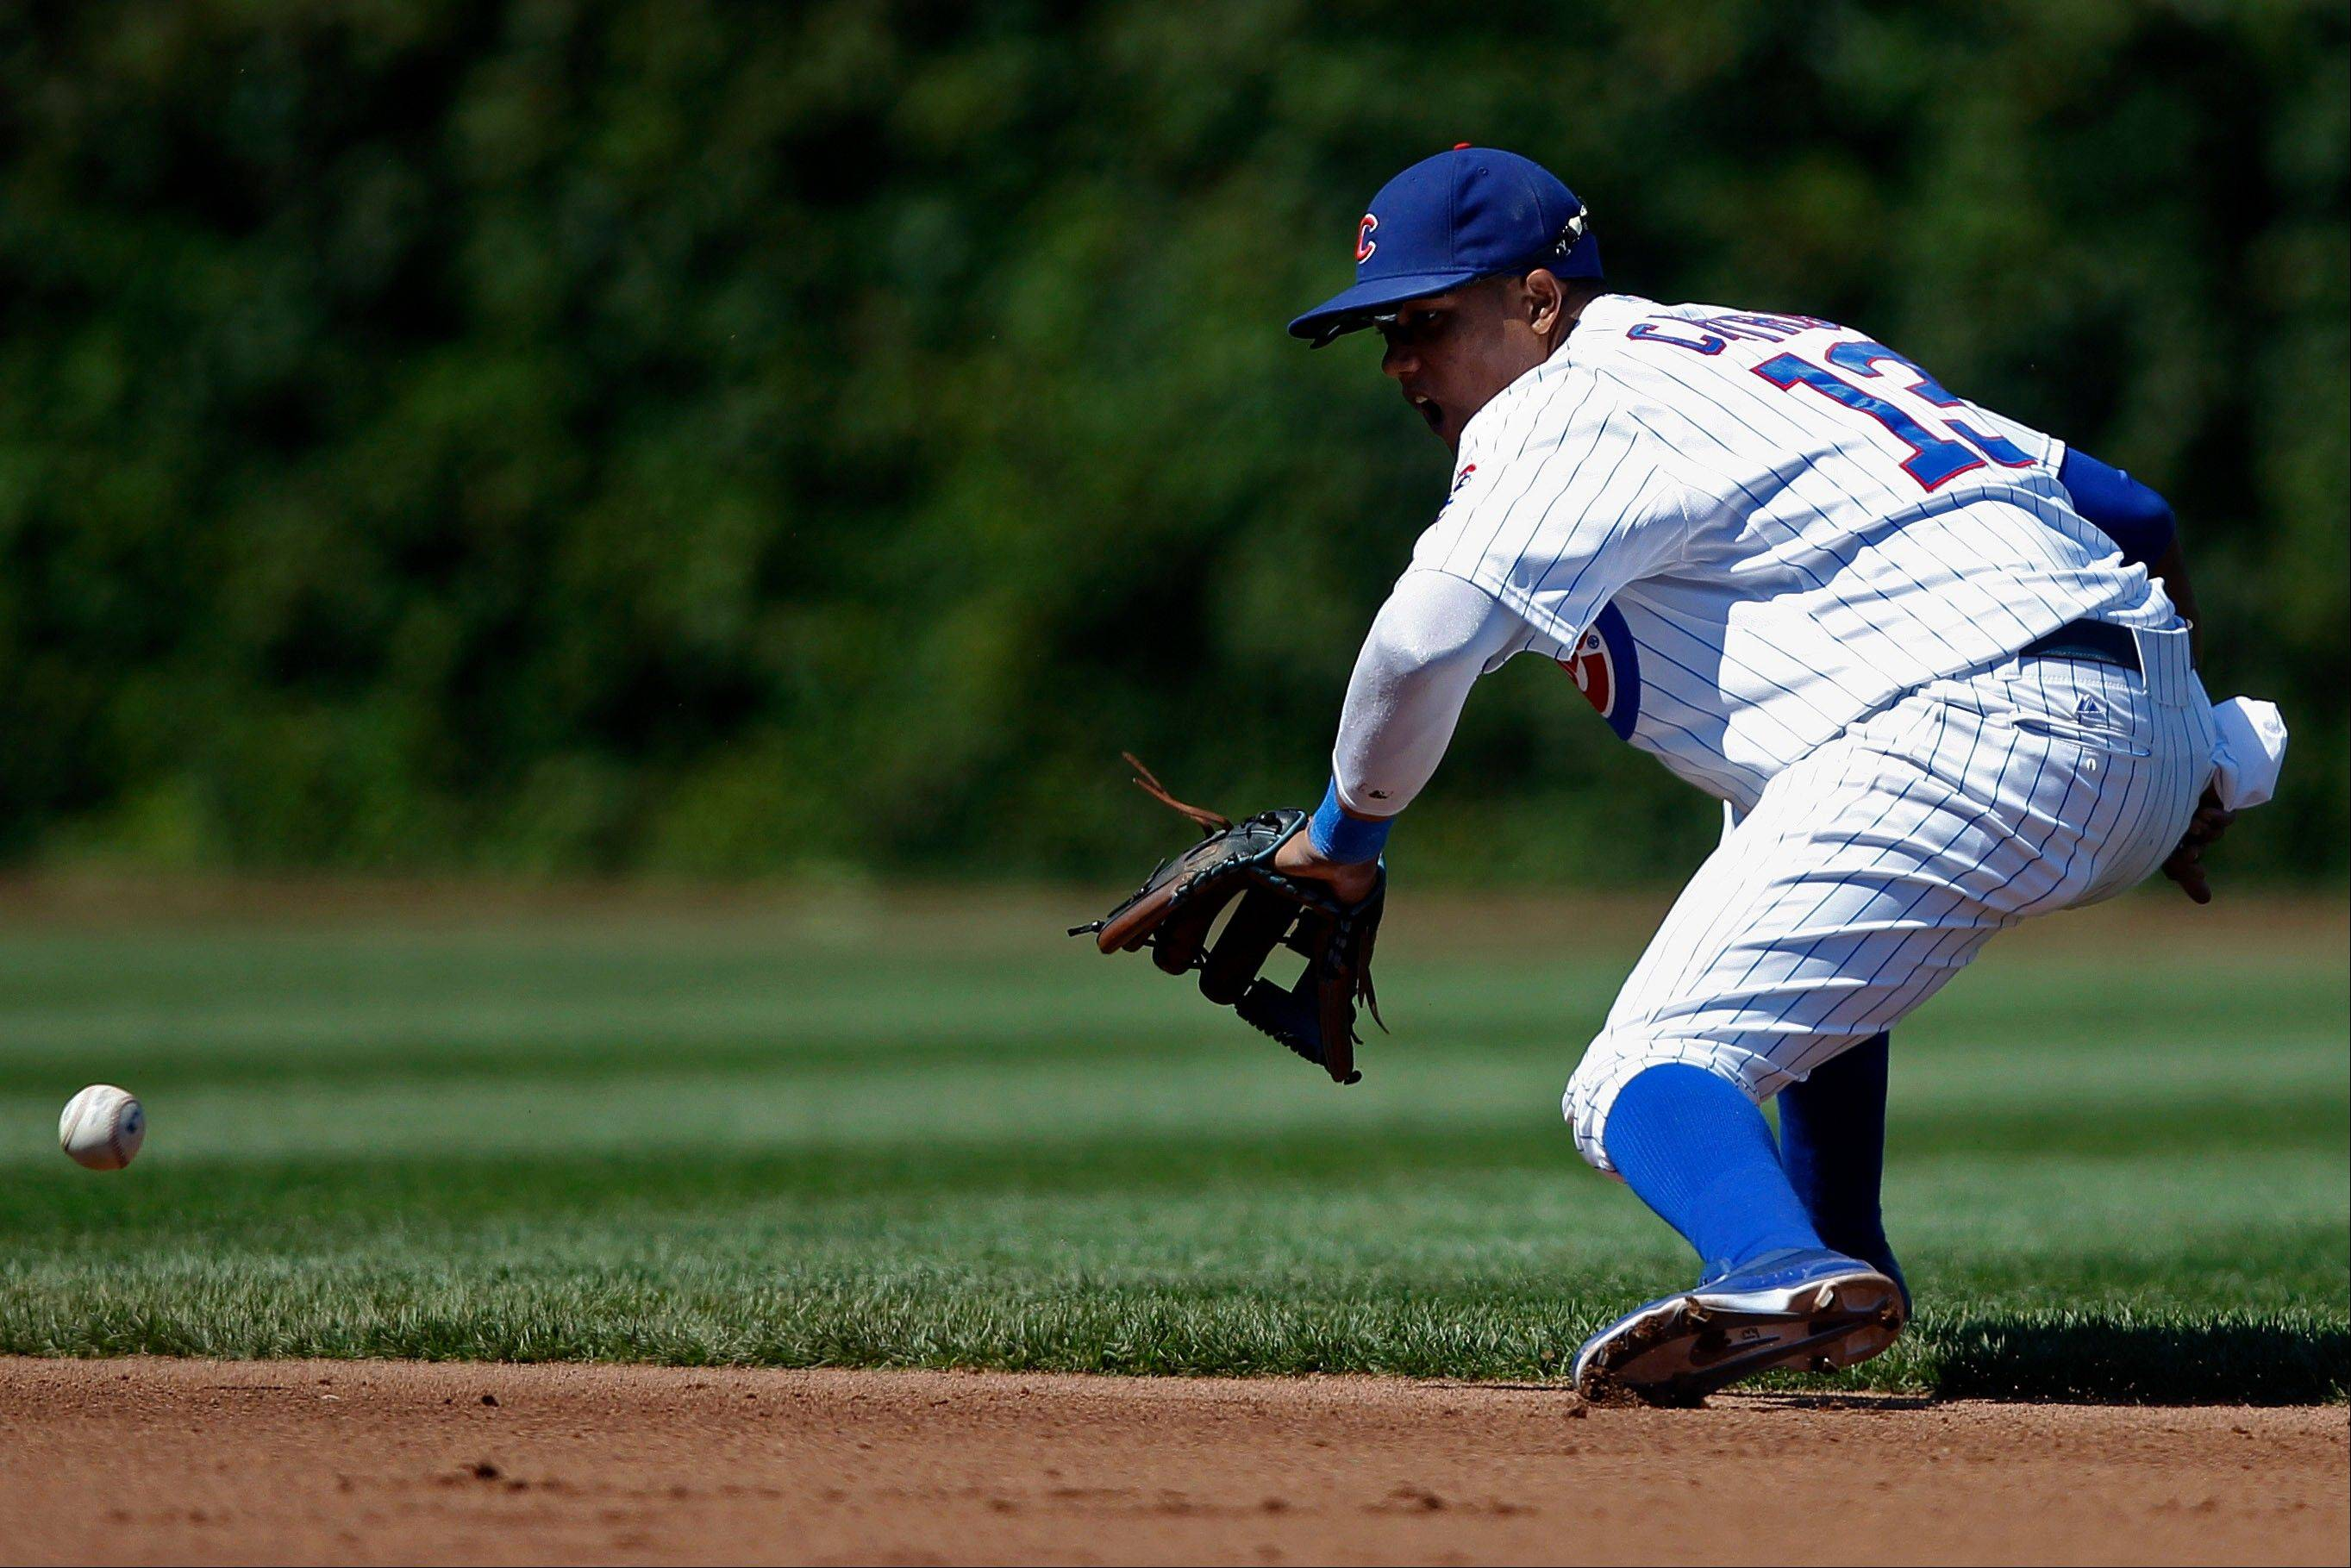 Associated Press A day after being benched for a mental mistake, Cubs shortstop Starlin Castro was back on the field. The Cubs and manager Dale Sveum knows the only way Castro can become a consistent major-league player is to play.